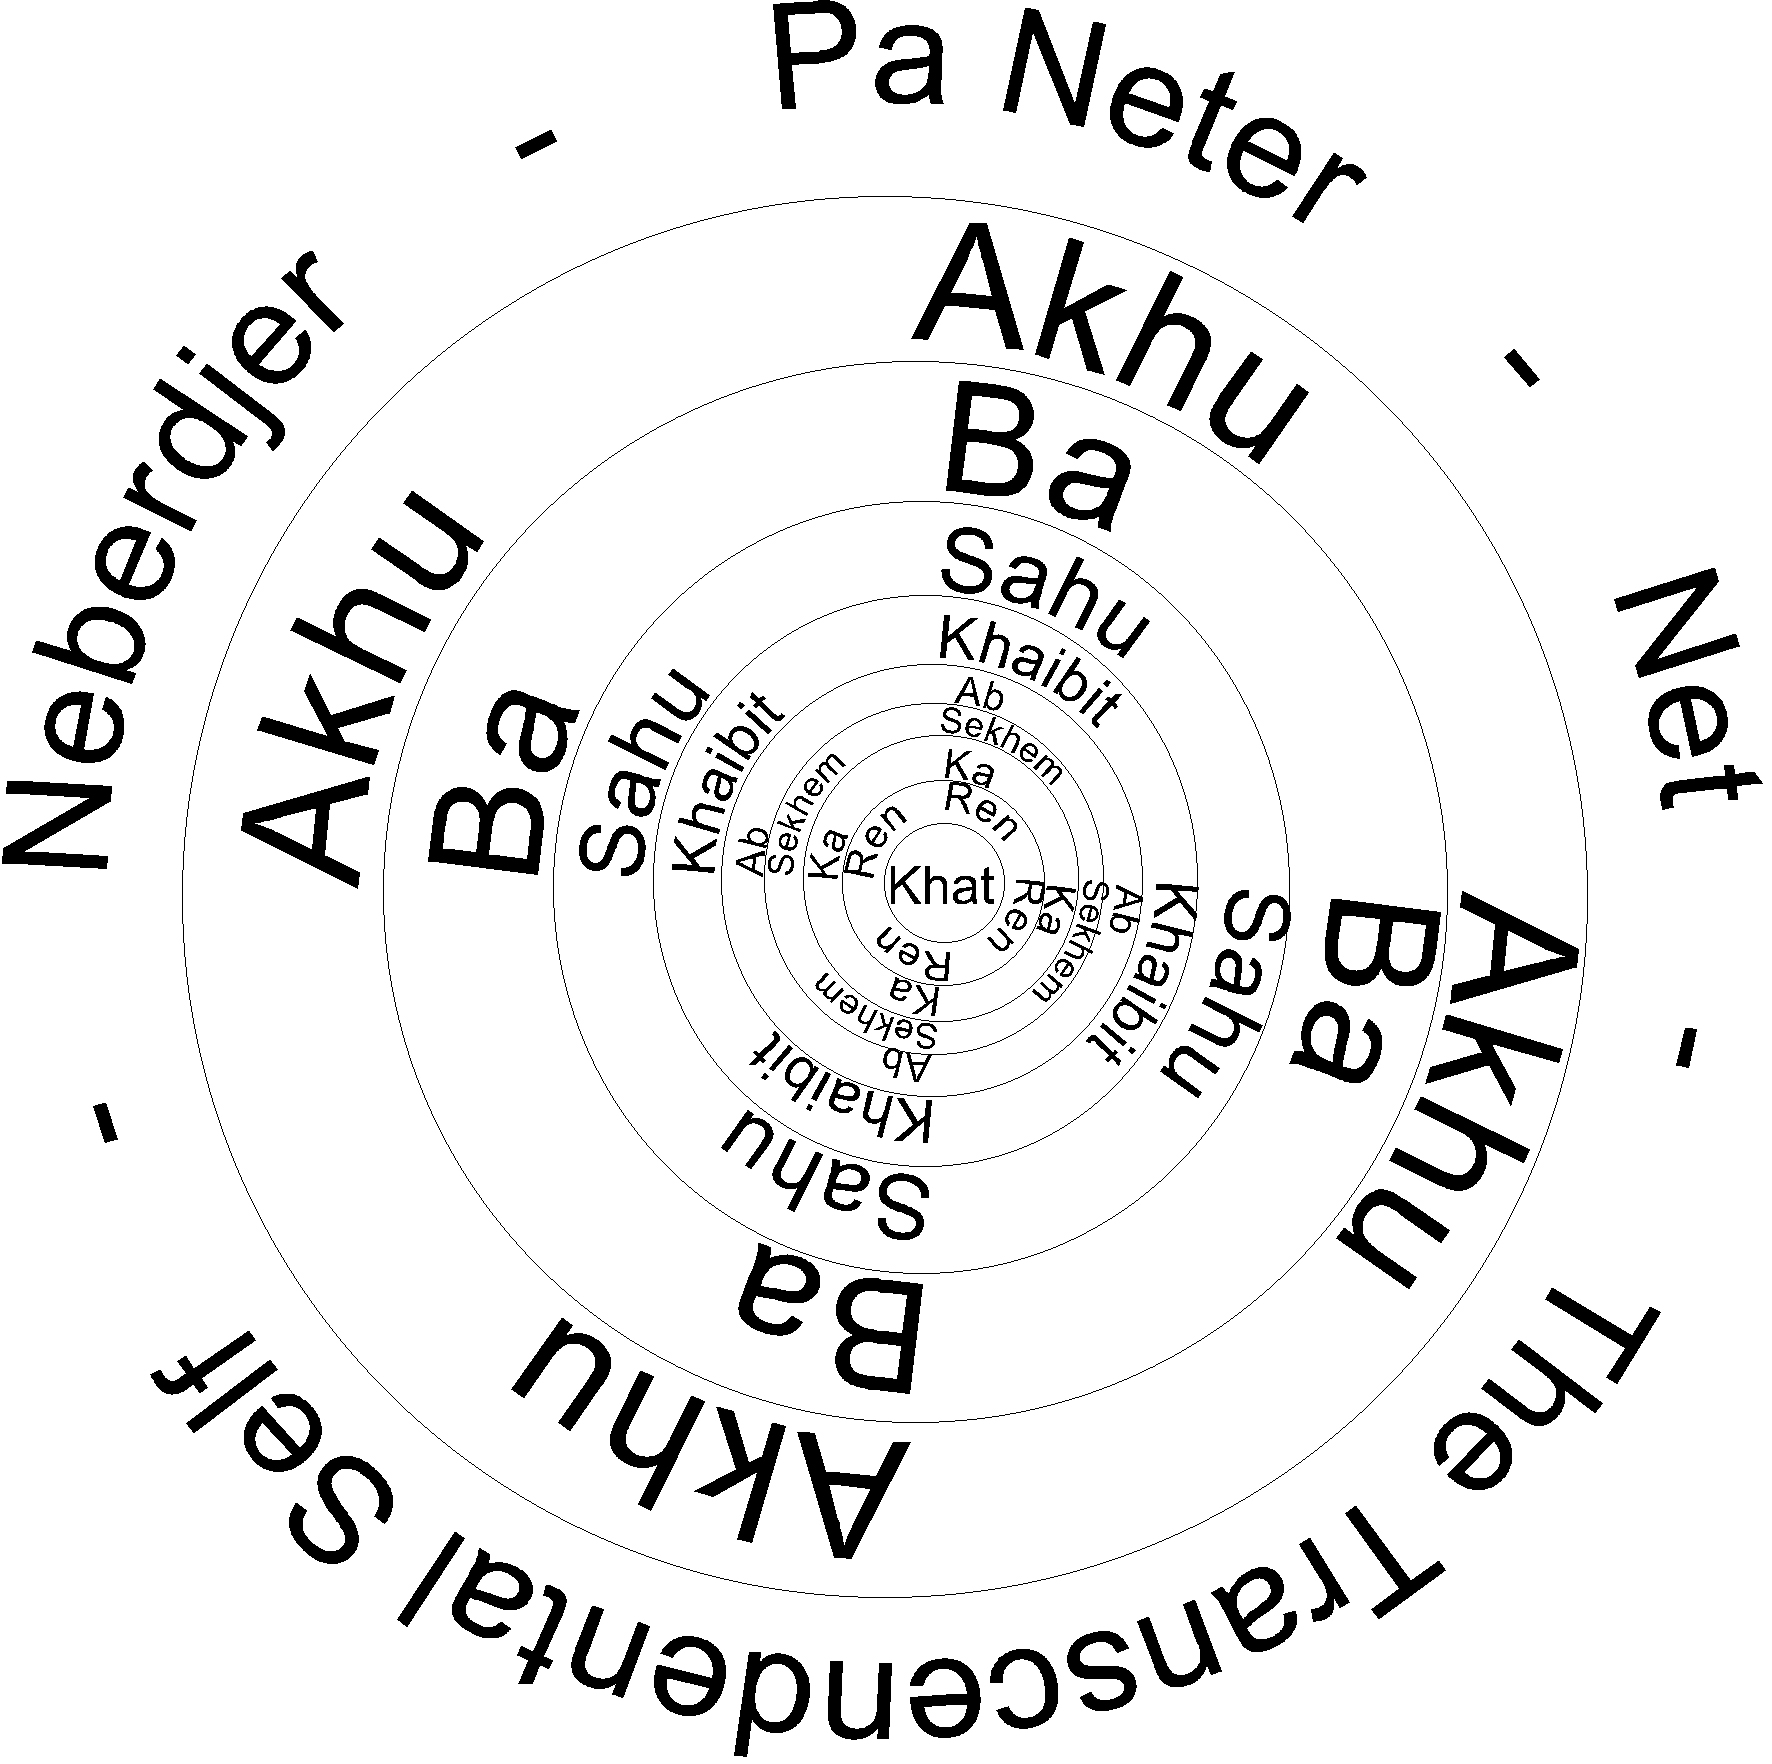 Parts of the spirit in circle